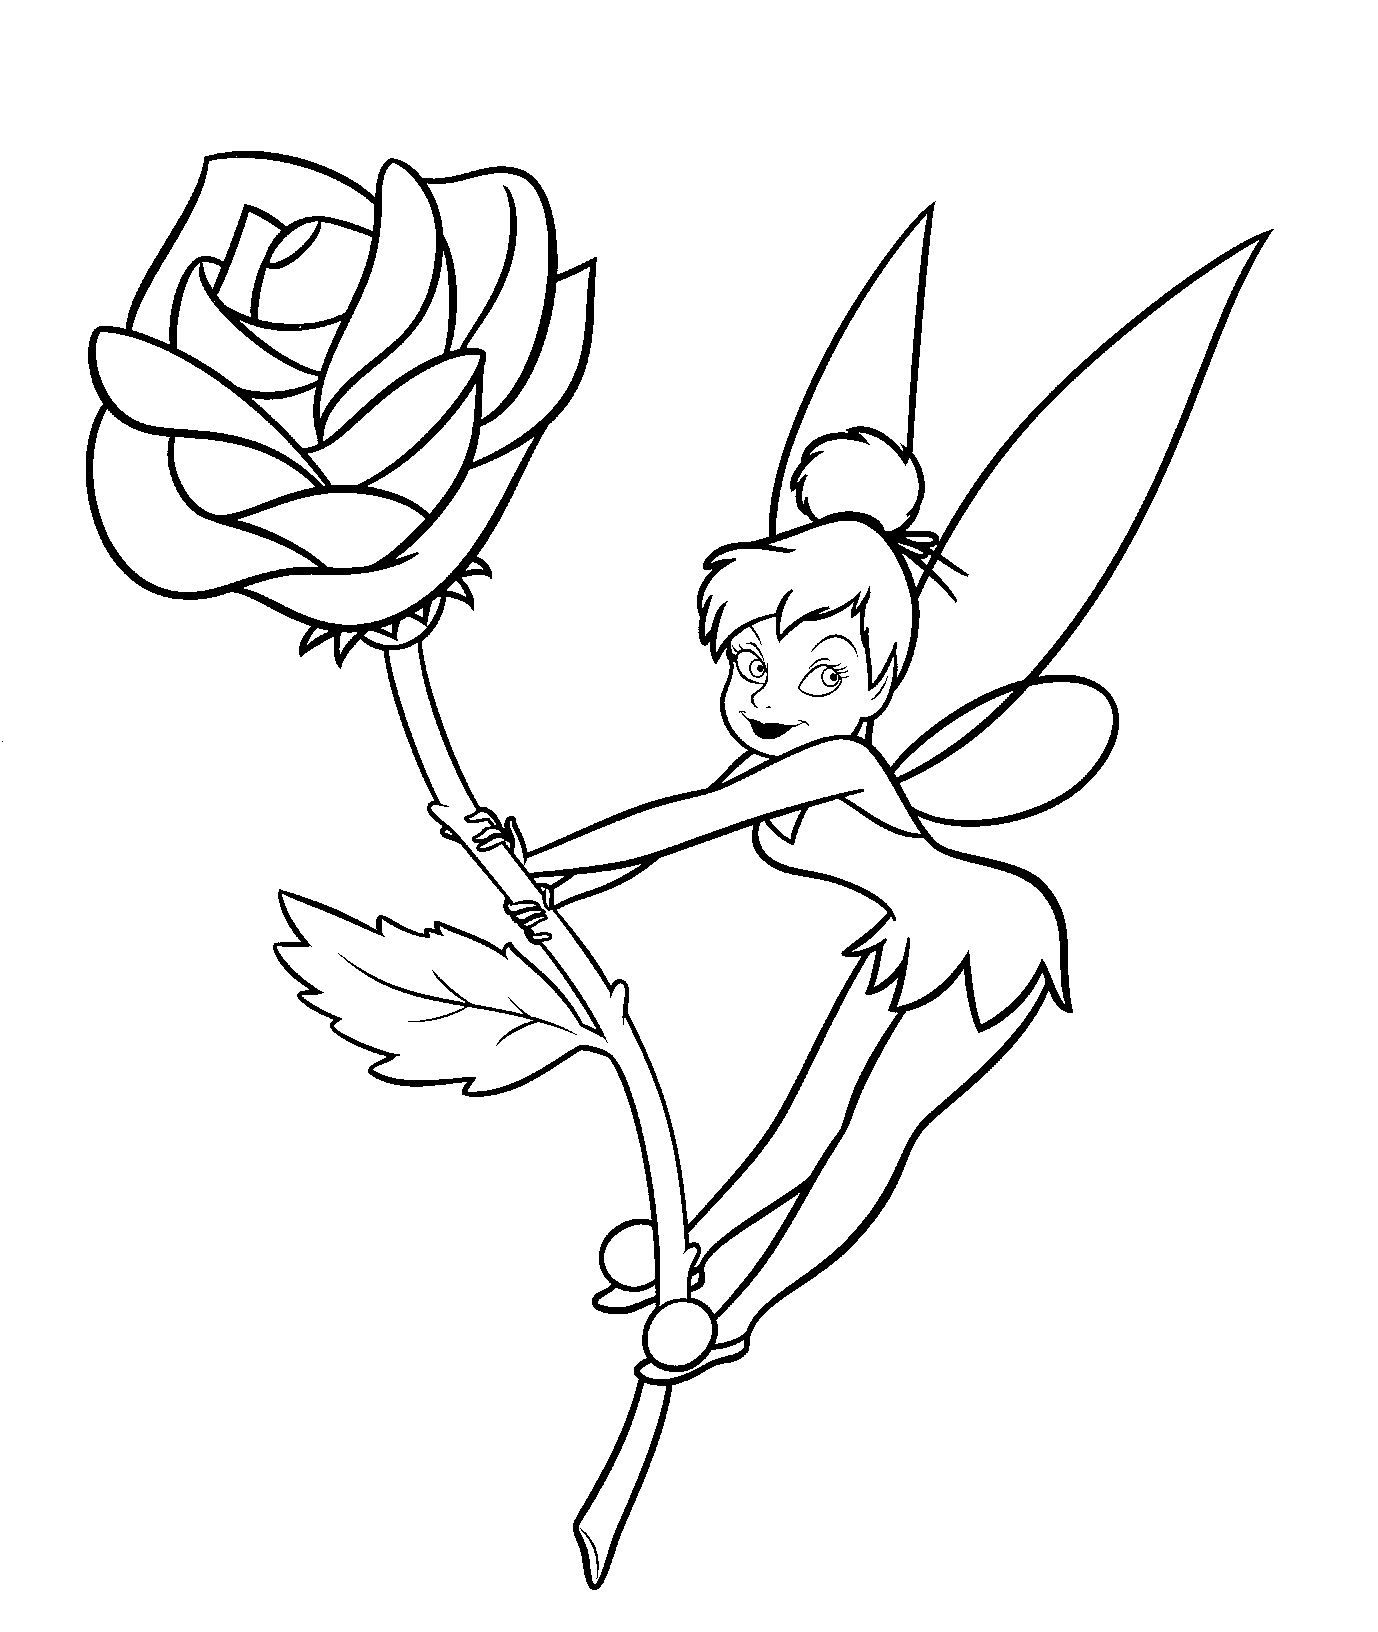 tinkerbell coloring pages free printable 30 tinkerbell coloring pages free coloring pages free free pages tinkerbell printable coloring